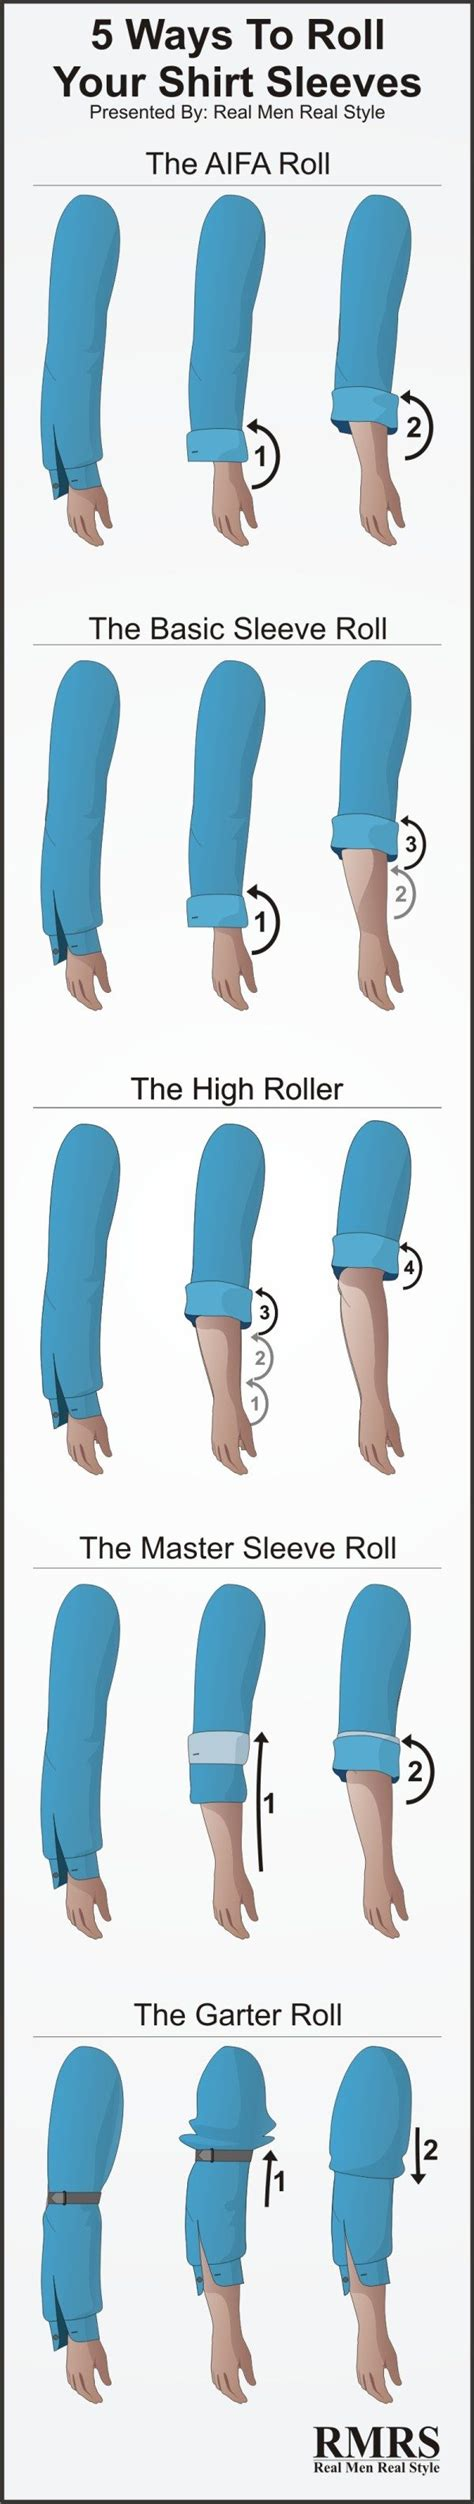 how to your to roll how to roll shirt sleeves 5 ways to fold your shirt sleeves sleeve rolling infographic